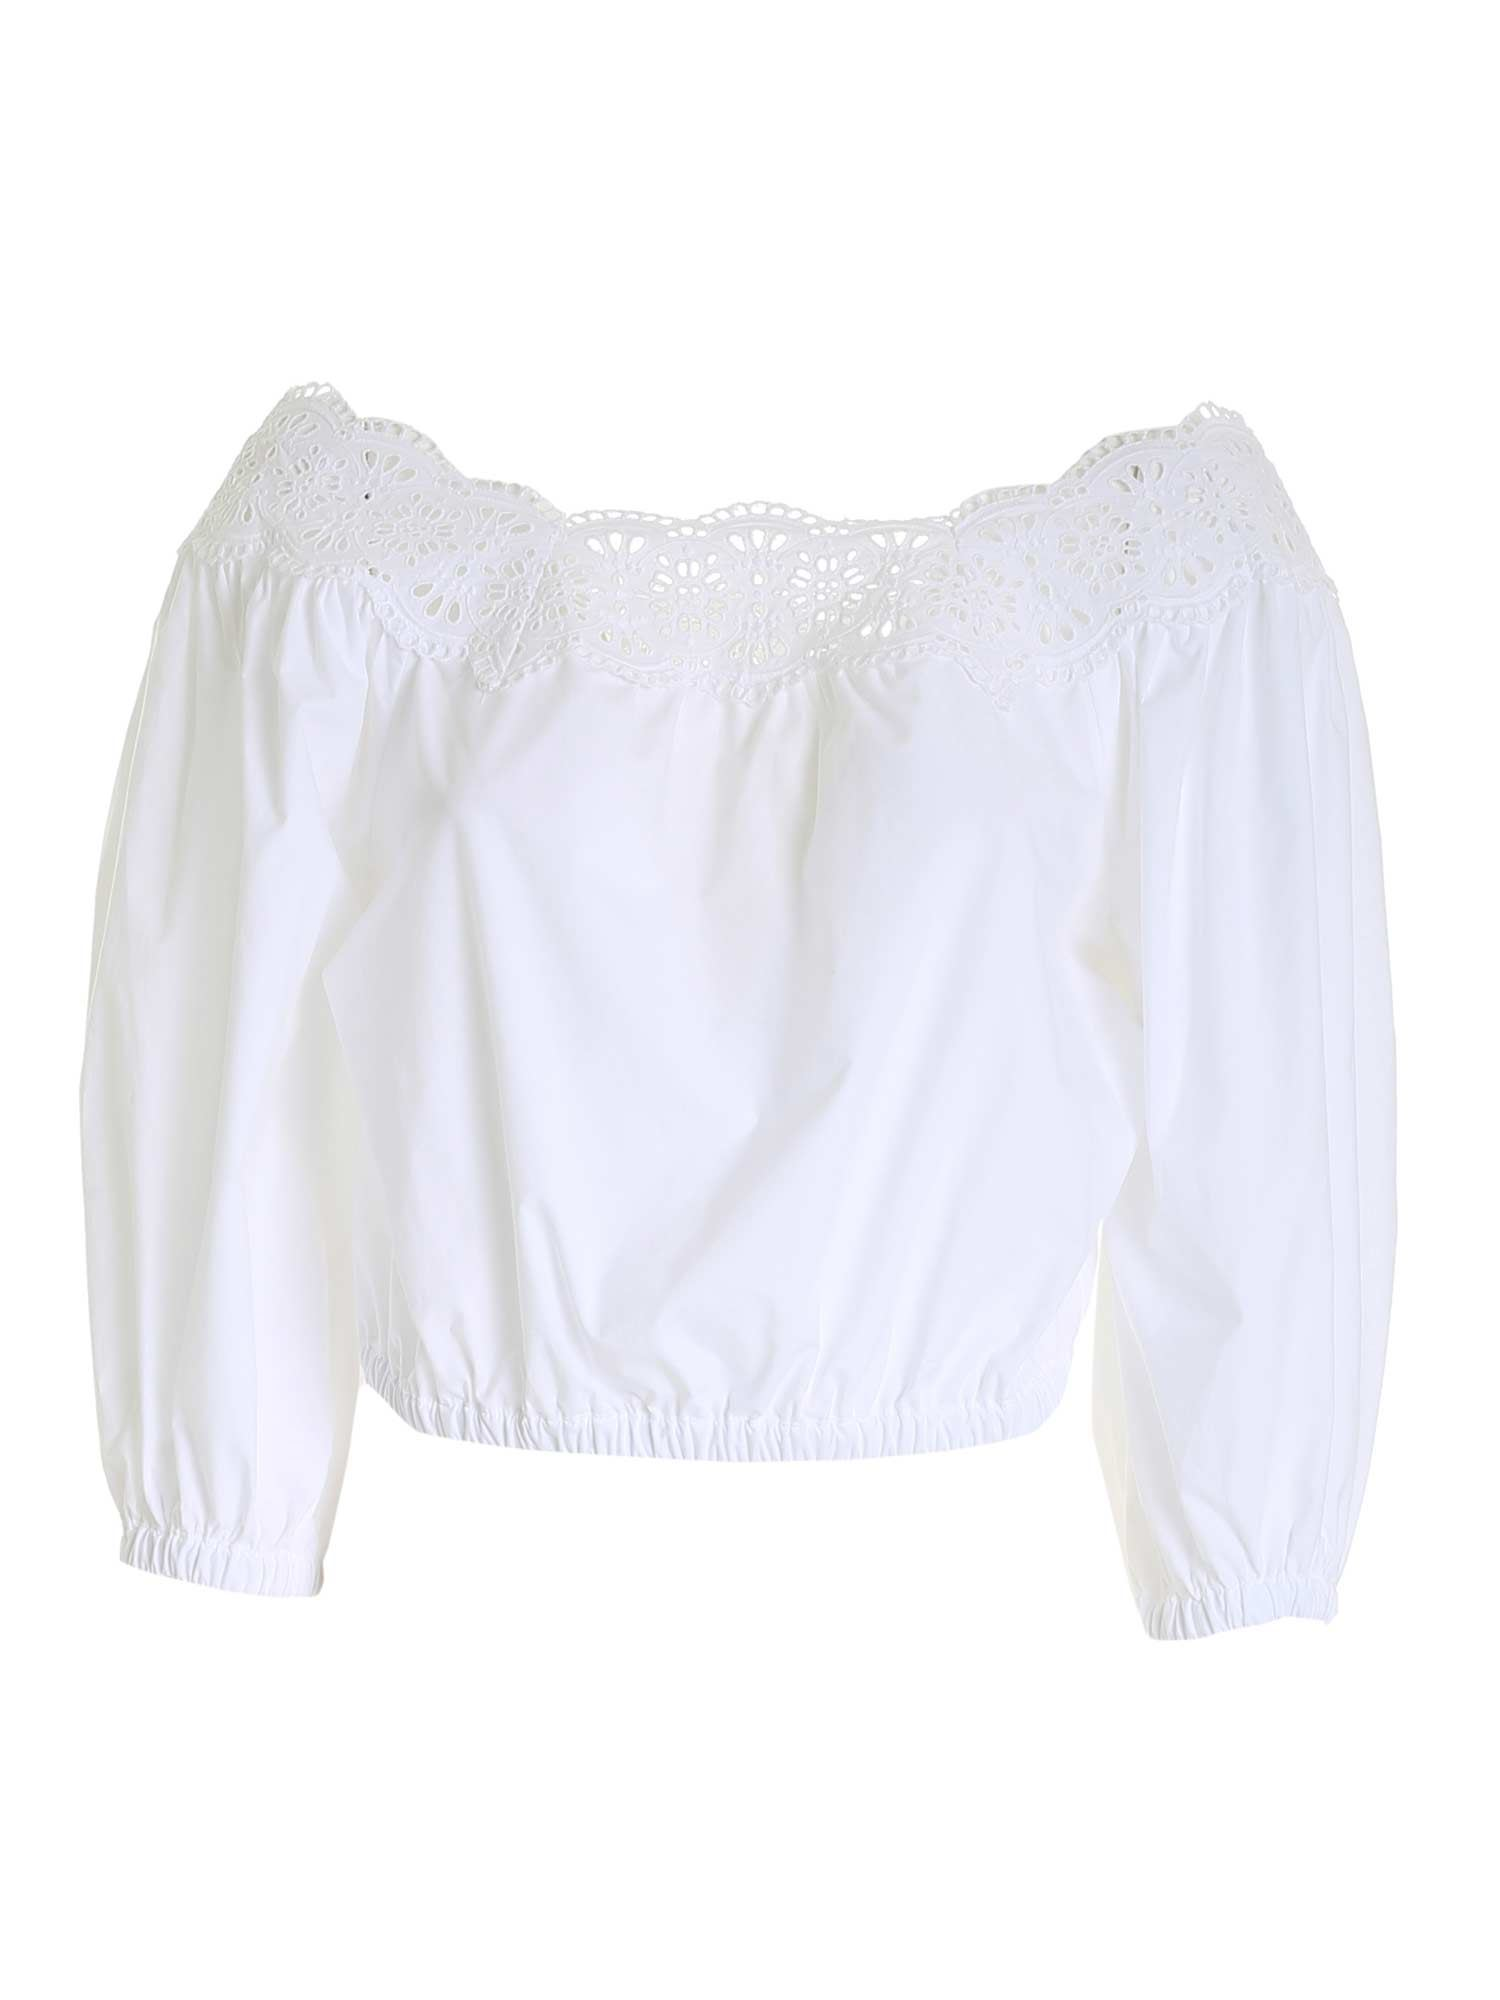 P.a.r.o.s.h. Cottons SANGALLO BLOUSE IN WHITE